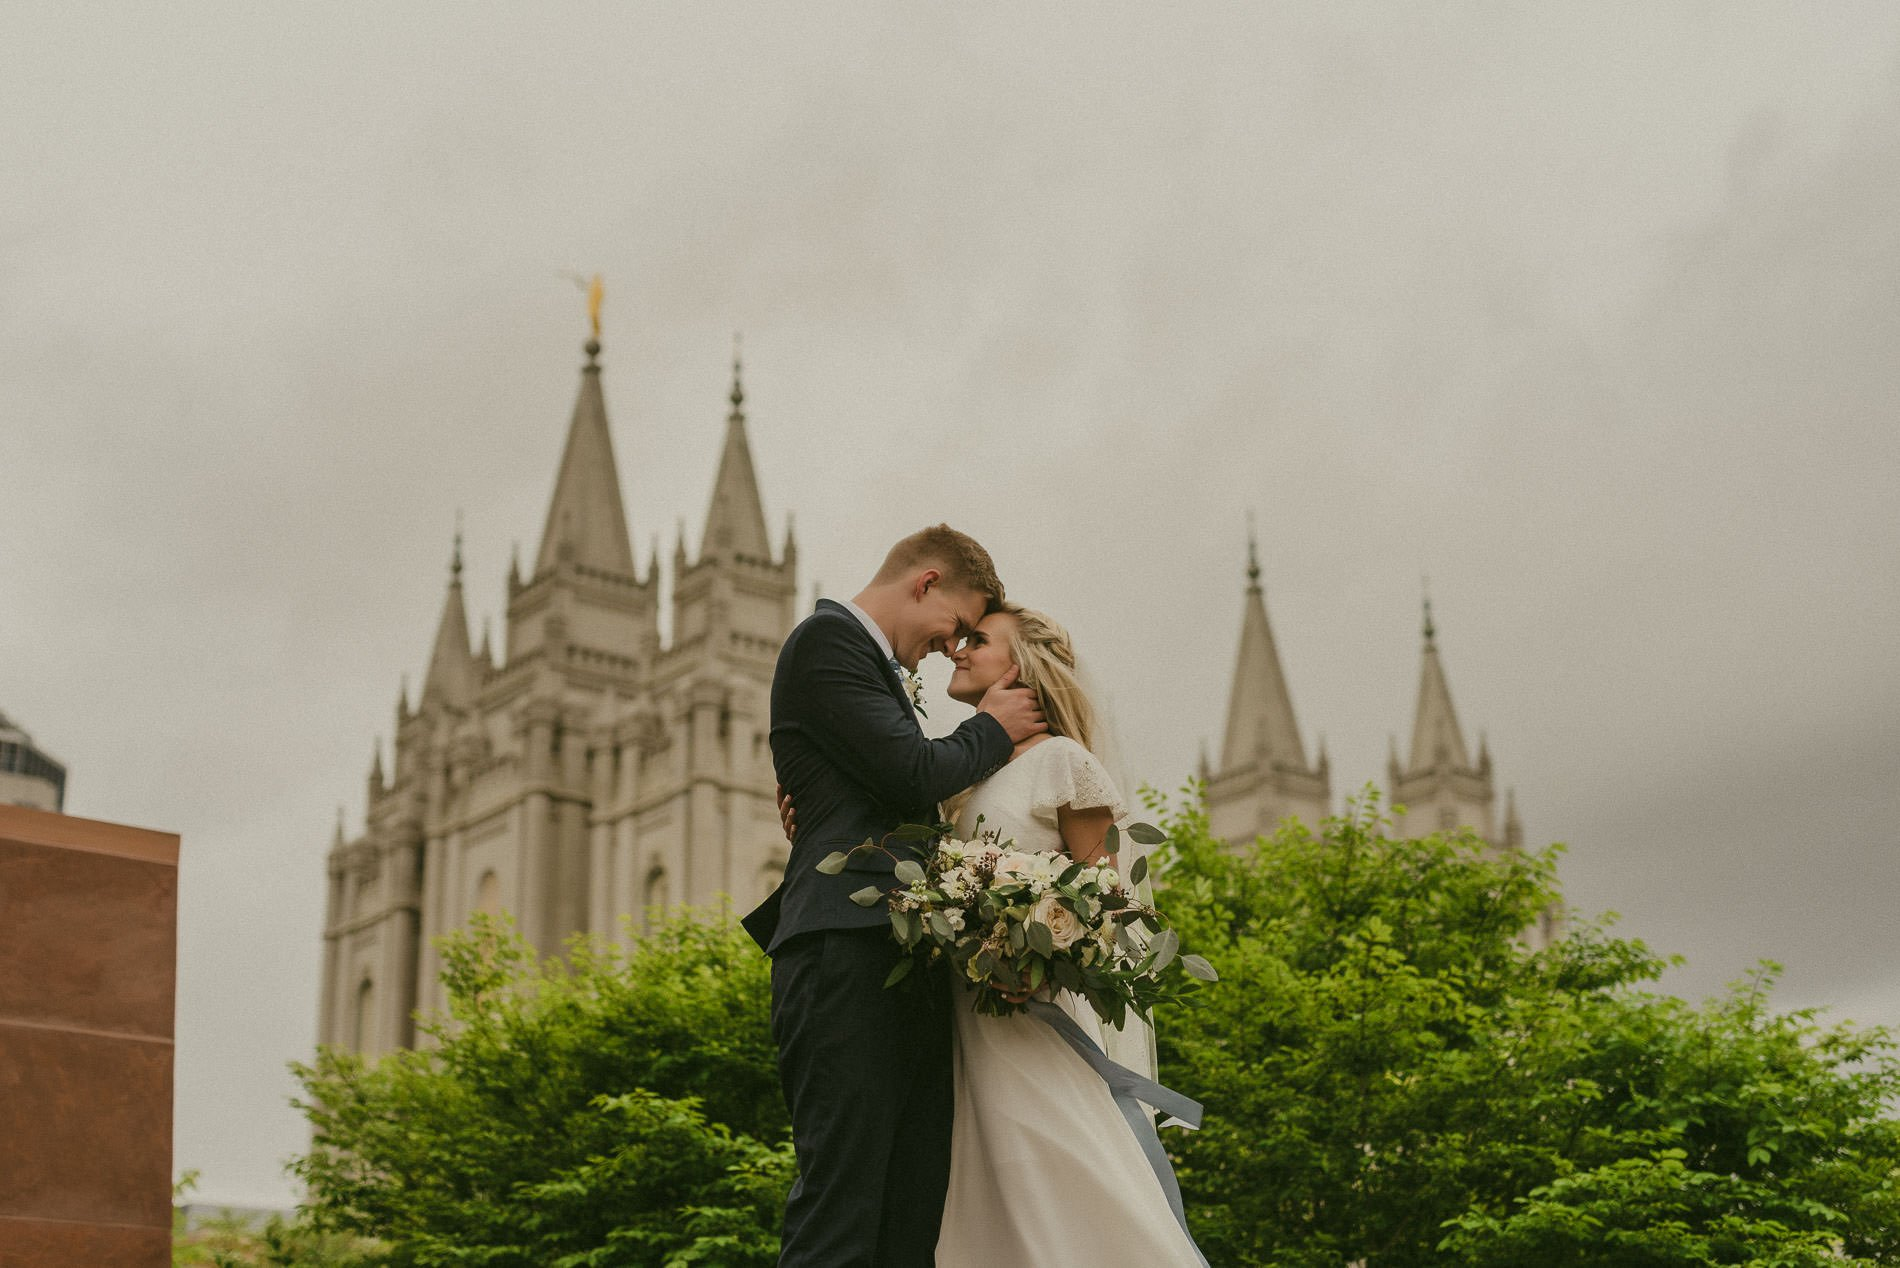 Bride and groom kissing in front of the Salt Lake City LDS Temple for Salt Lake City wedding photography.